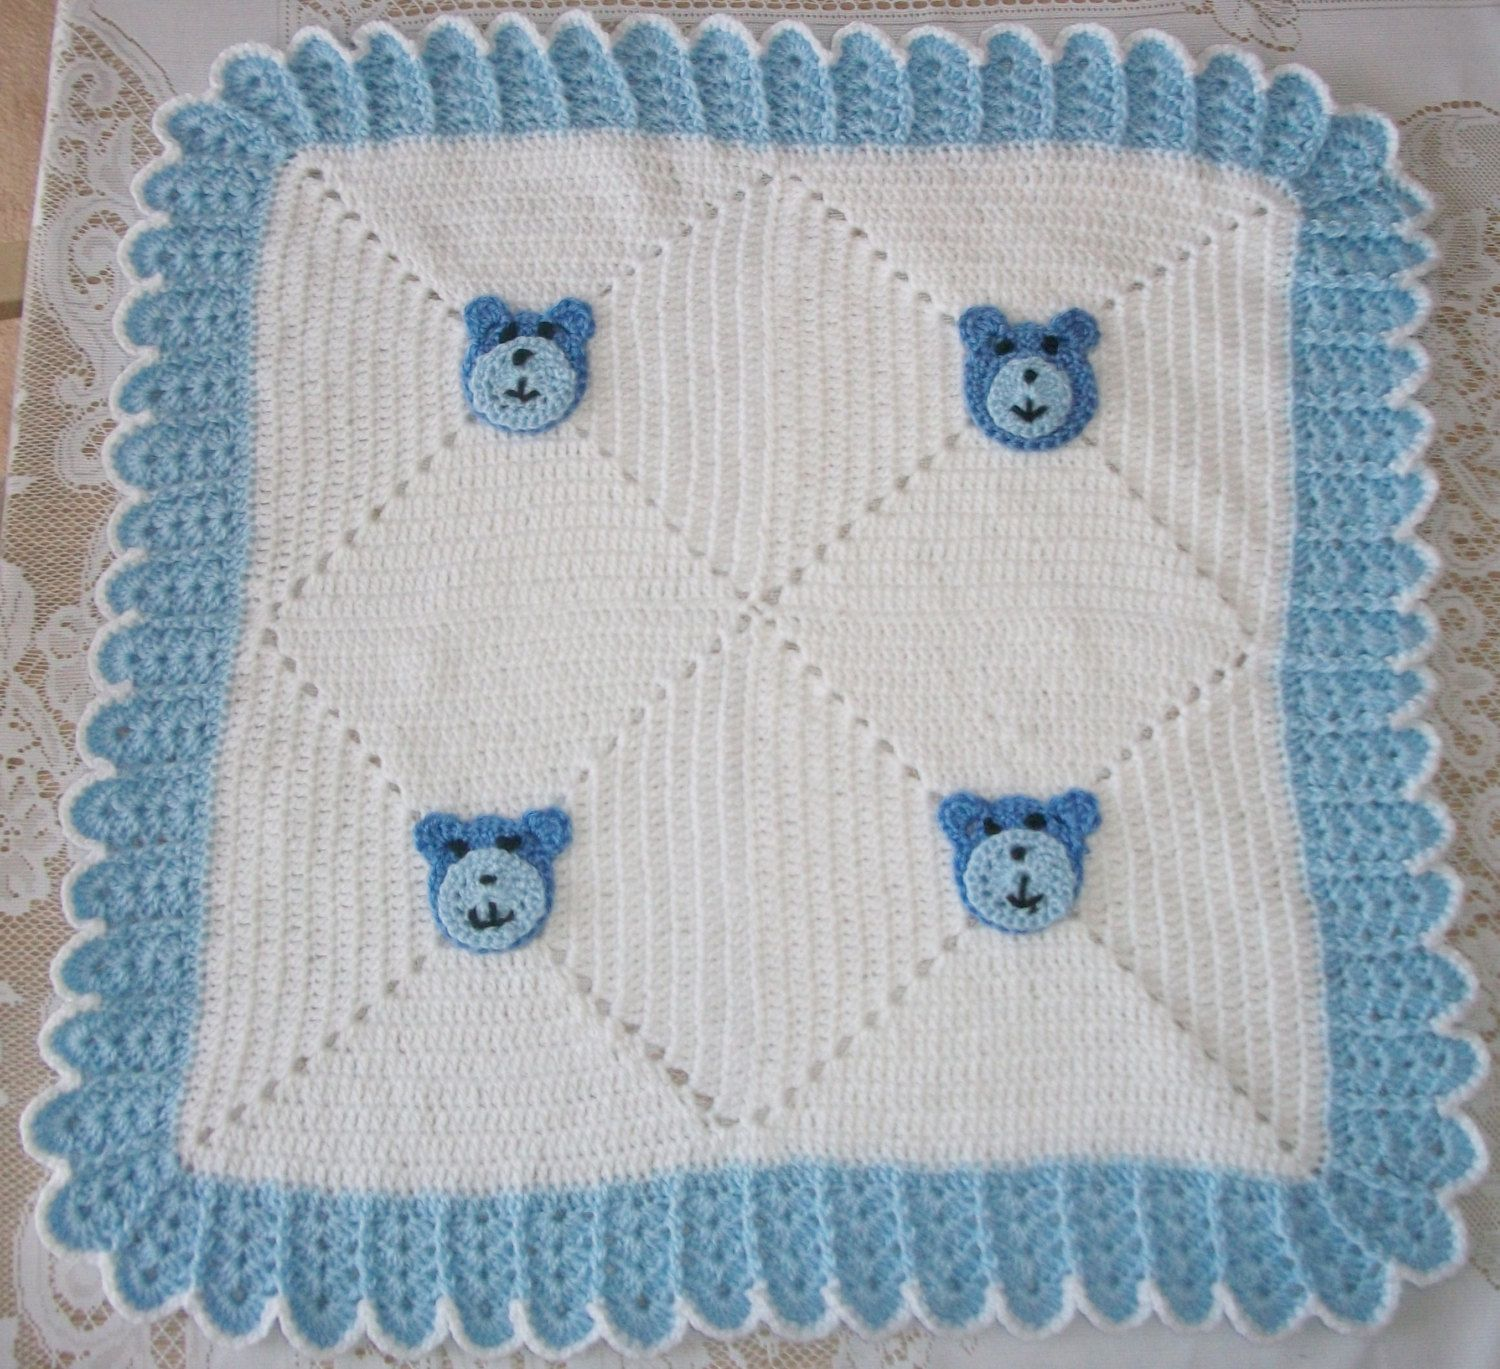 Car baby boy blanket crochet blanket by prairieheartstrings - Crochet Baby Boy Teddy Bear Sweater Set Layette Outfit With Leggings And Blanket Perfect For Baby Shower Gift Or Take Me Home Outfit